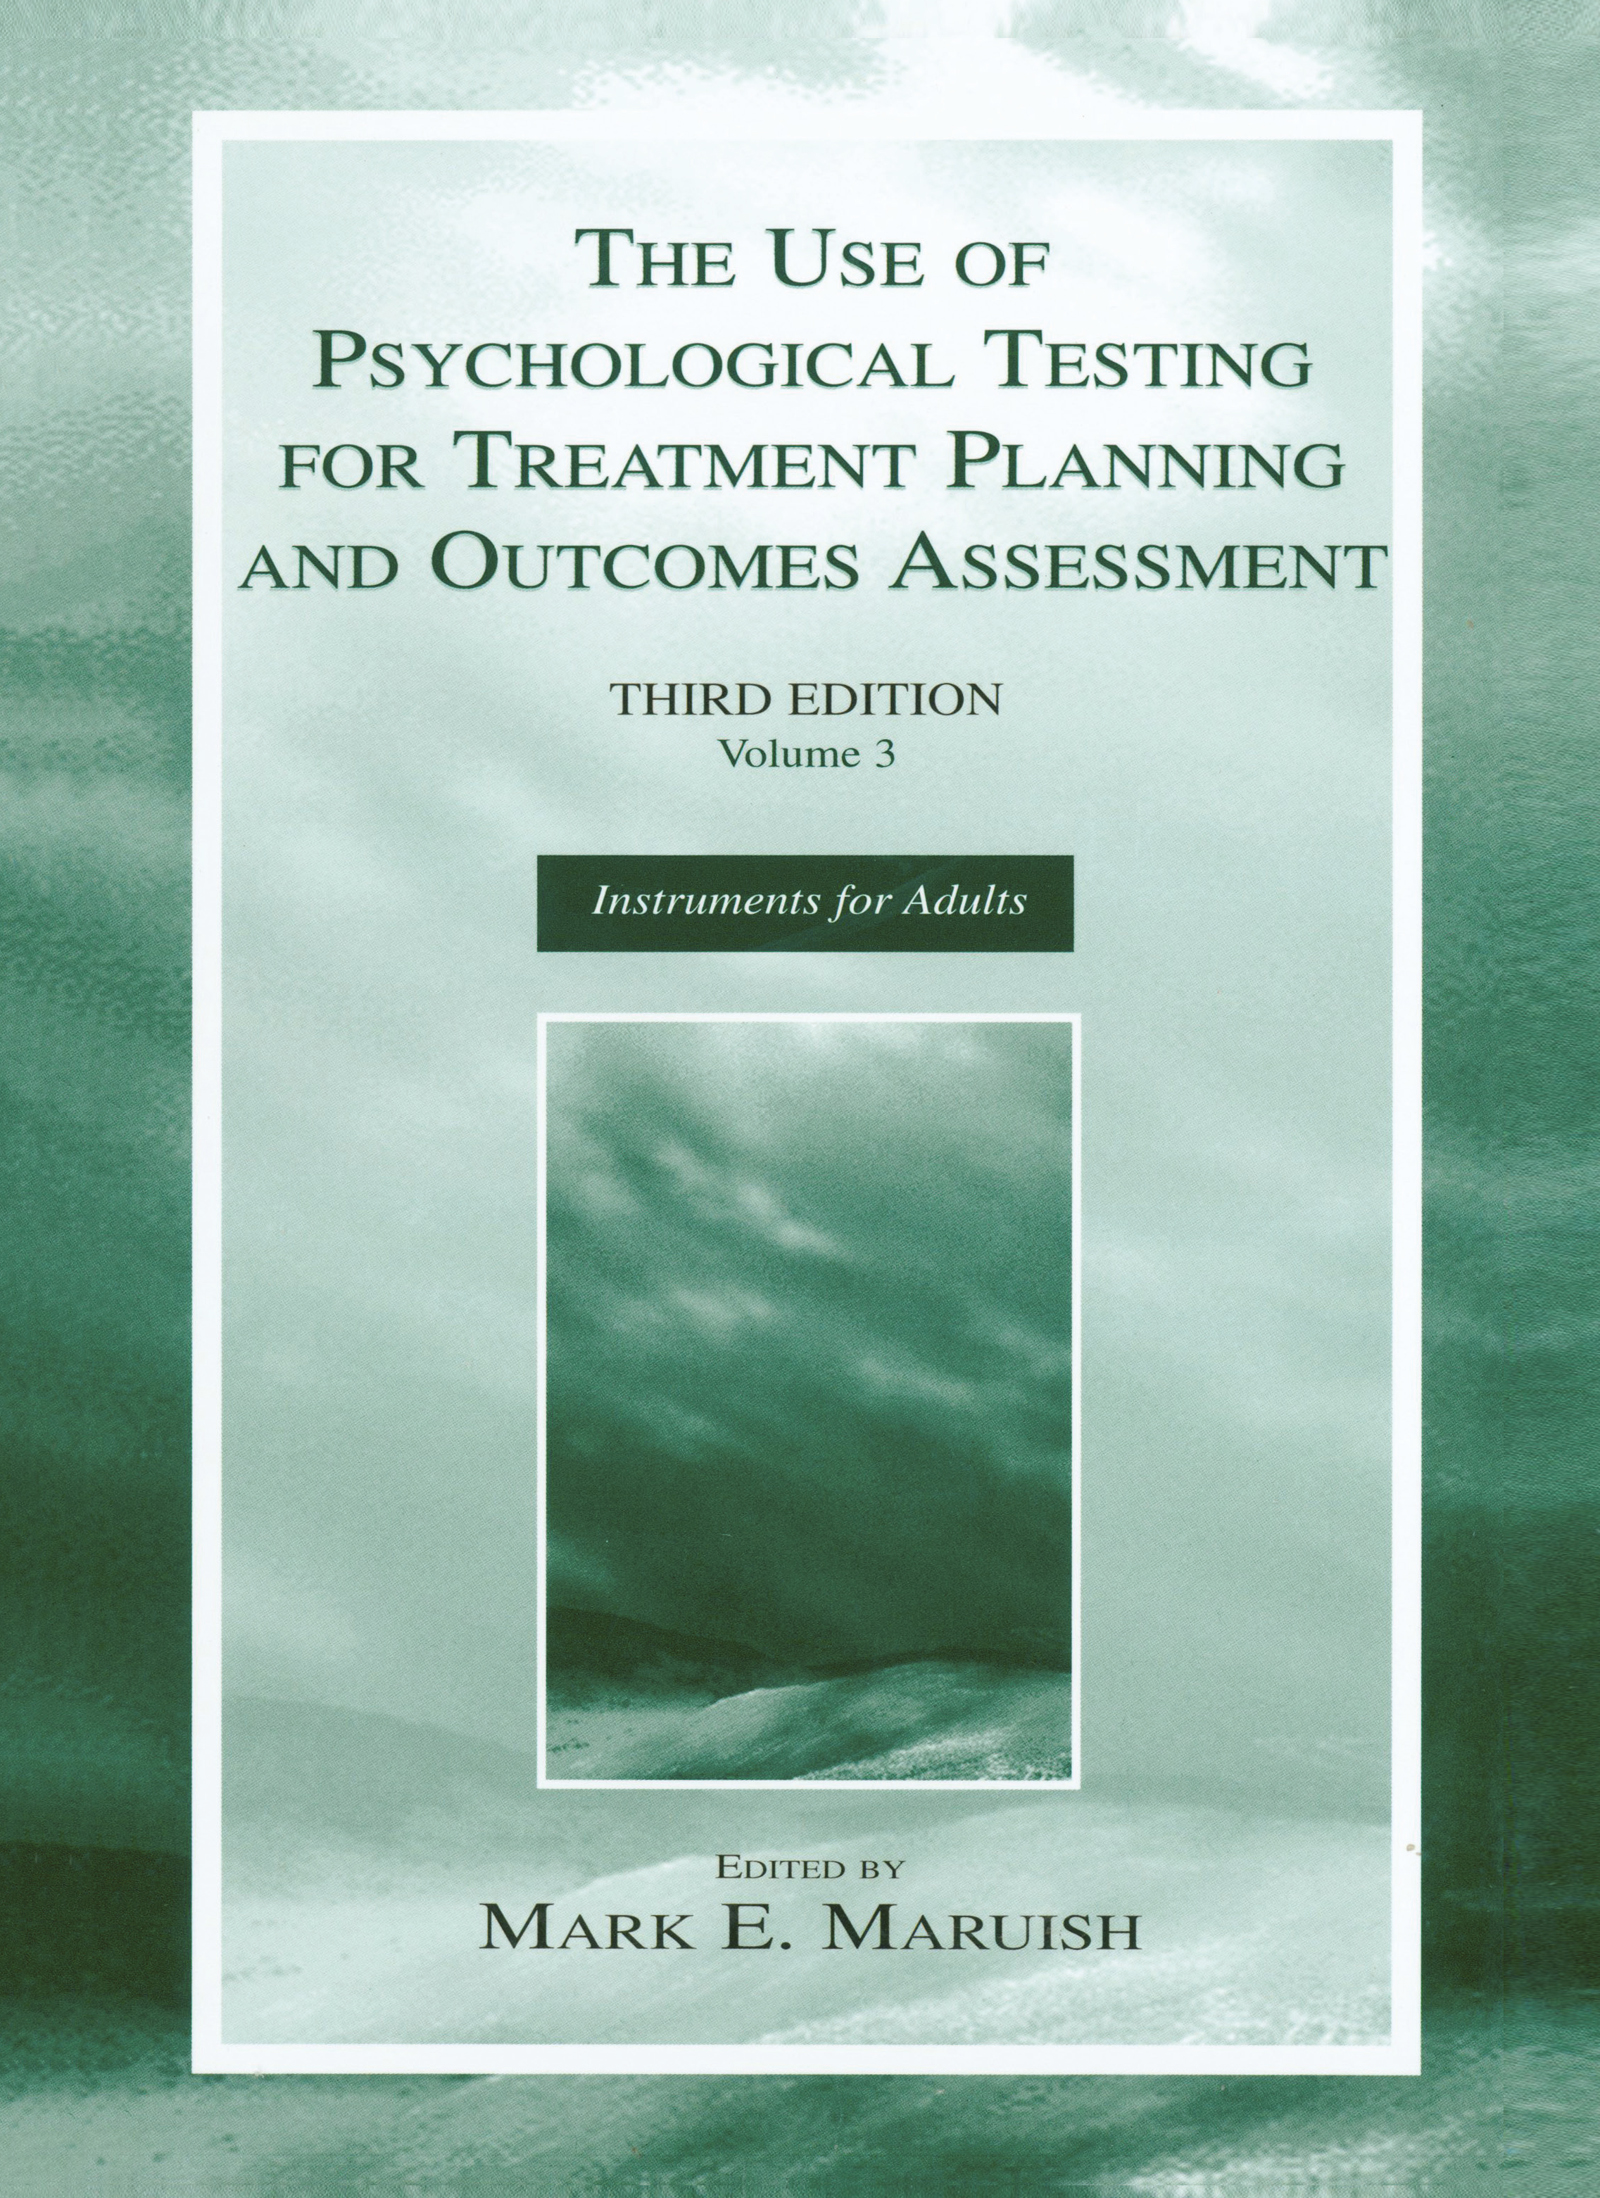 The Use of Psychological Testing for Treatment Planning and Outcomes Assessment